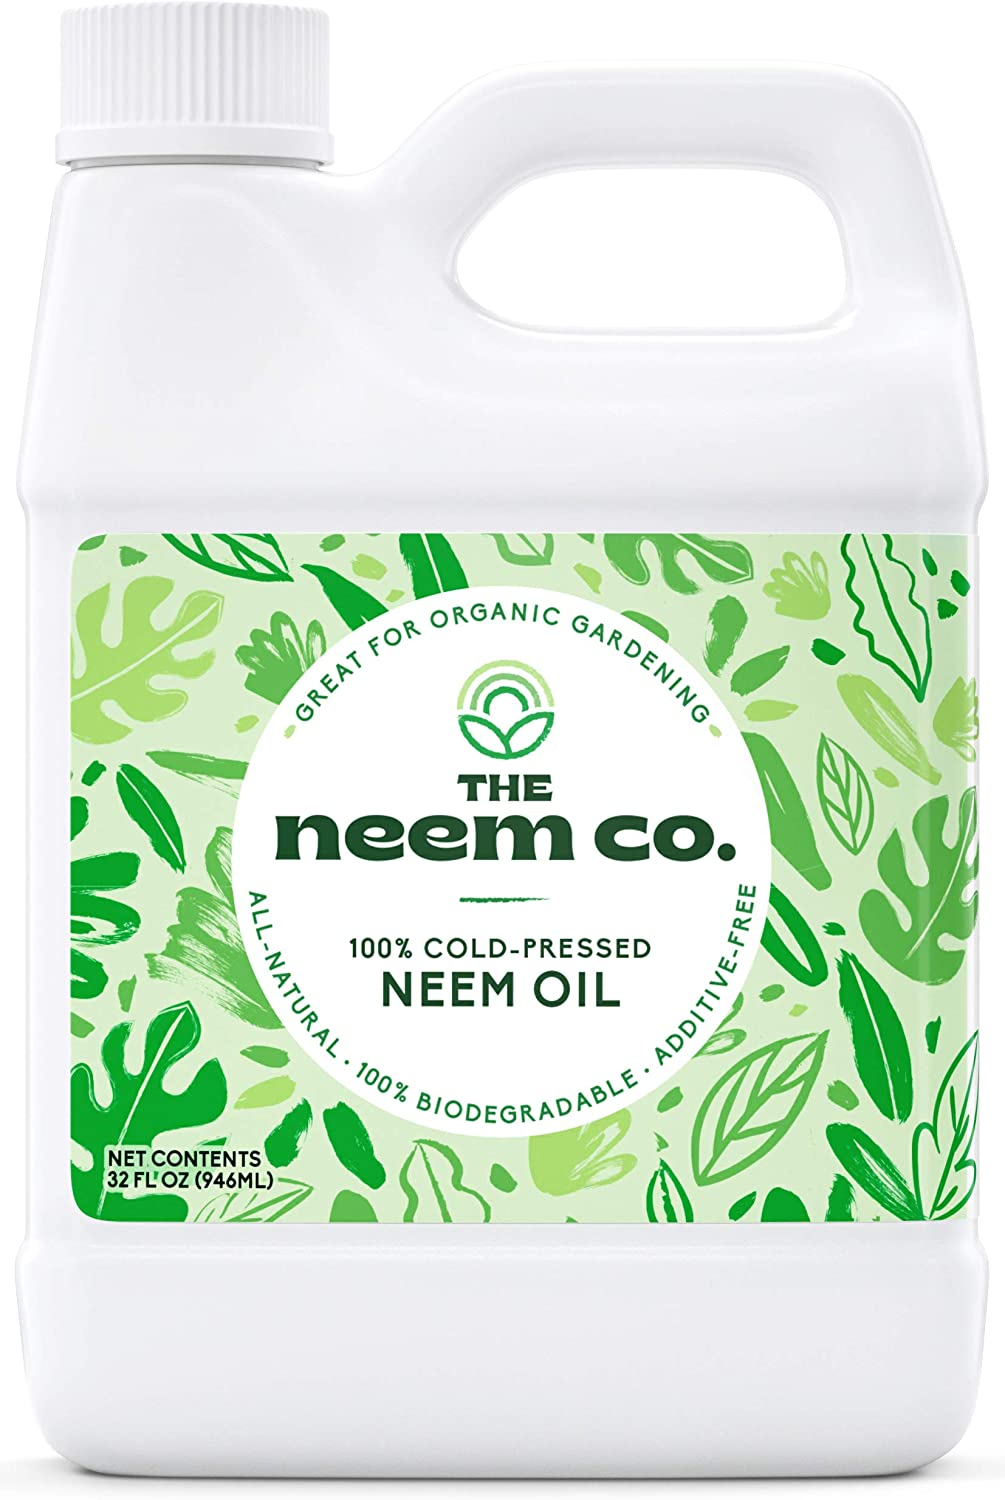 Neem Oil, 100% Organic & Pure (32 oz) - Cold Pressed Neem Seed Oil with High Azadirachtin Content: Health & Personal Care